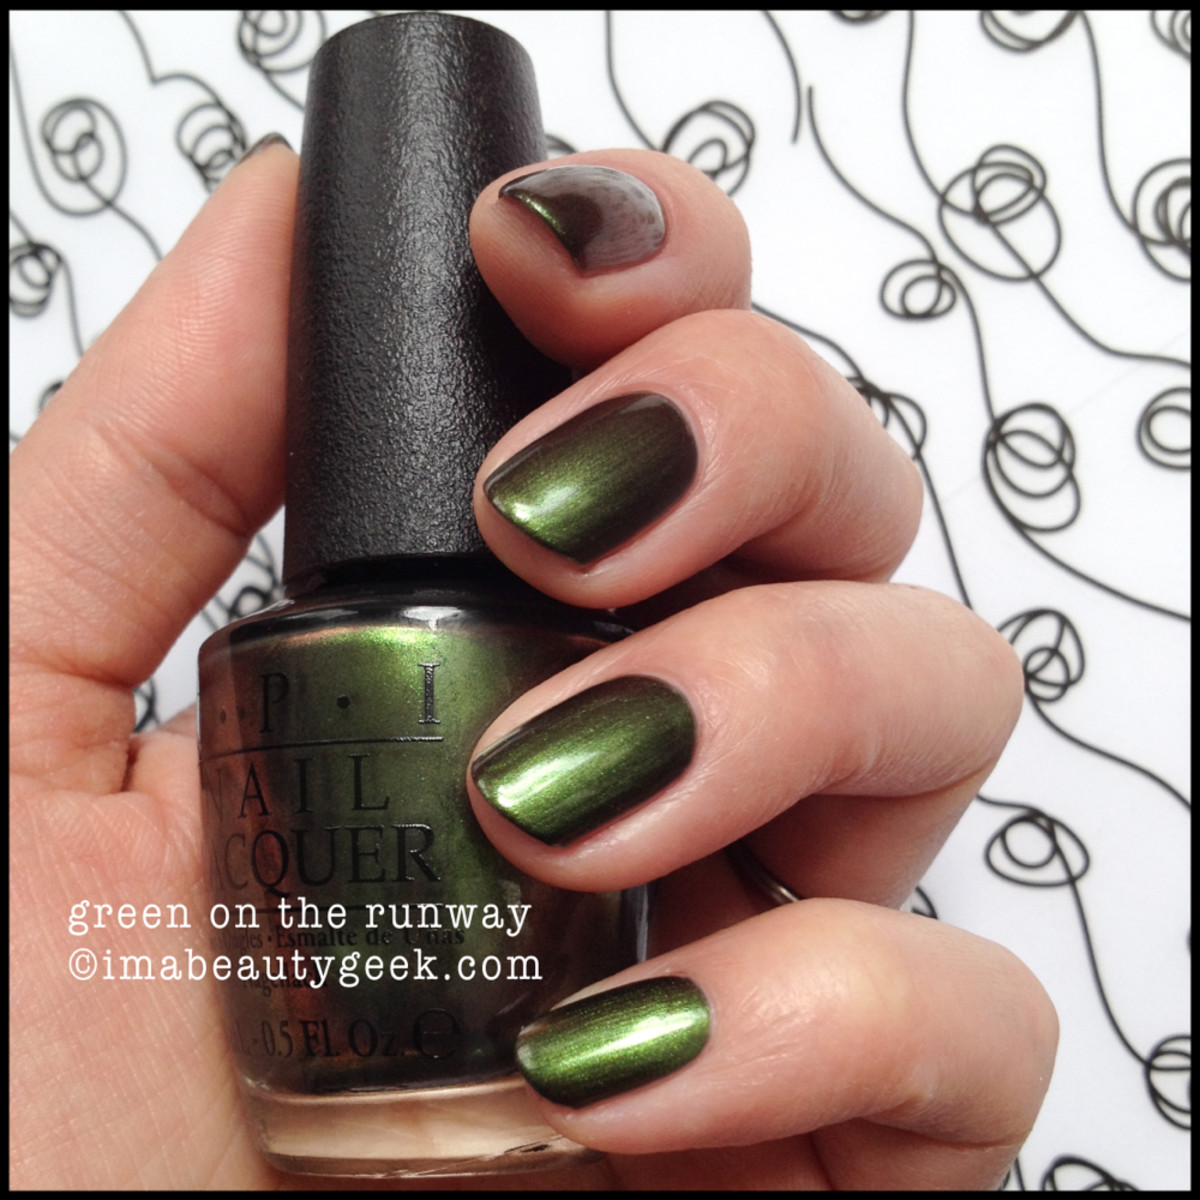 OPI Coca Cola Green on the Runway 2014